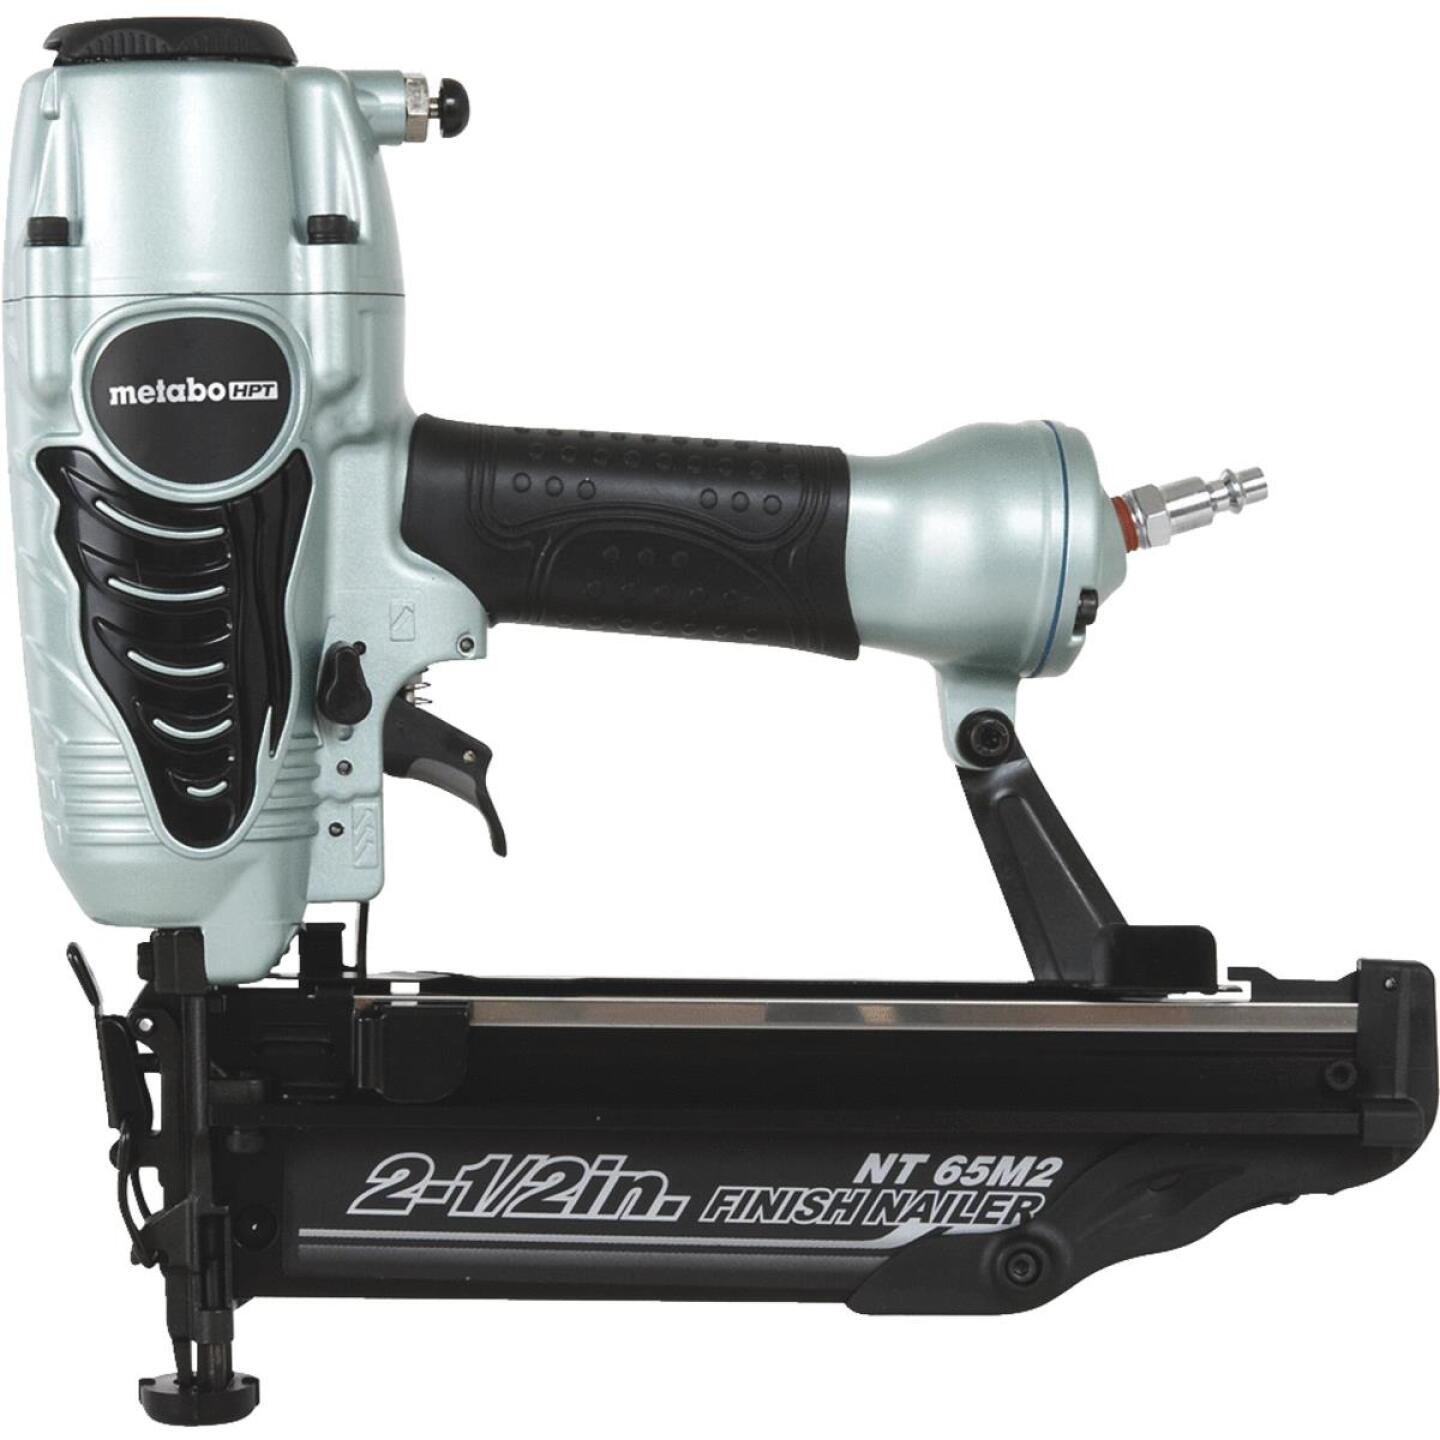 Metabo 16-Gauge 2-1/2 In. Straight Finish Nailer with Air Duster Image 1